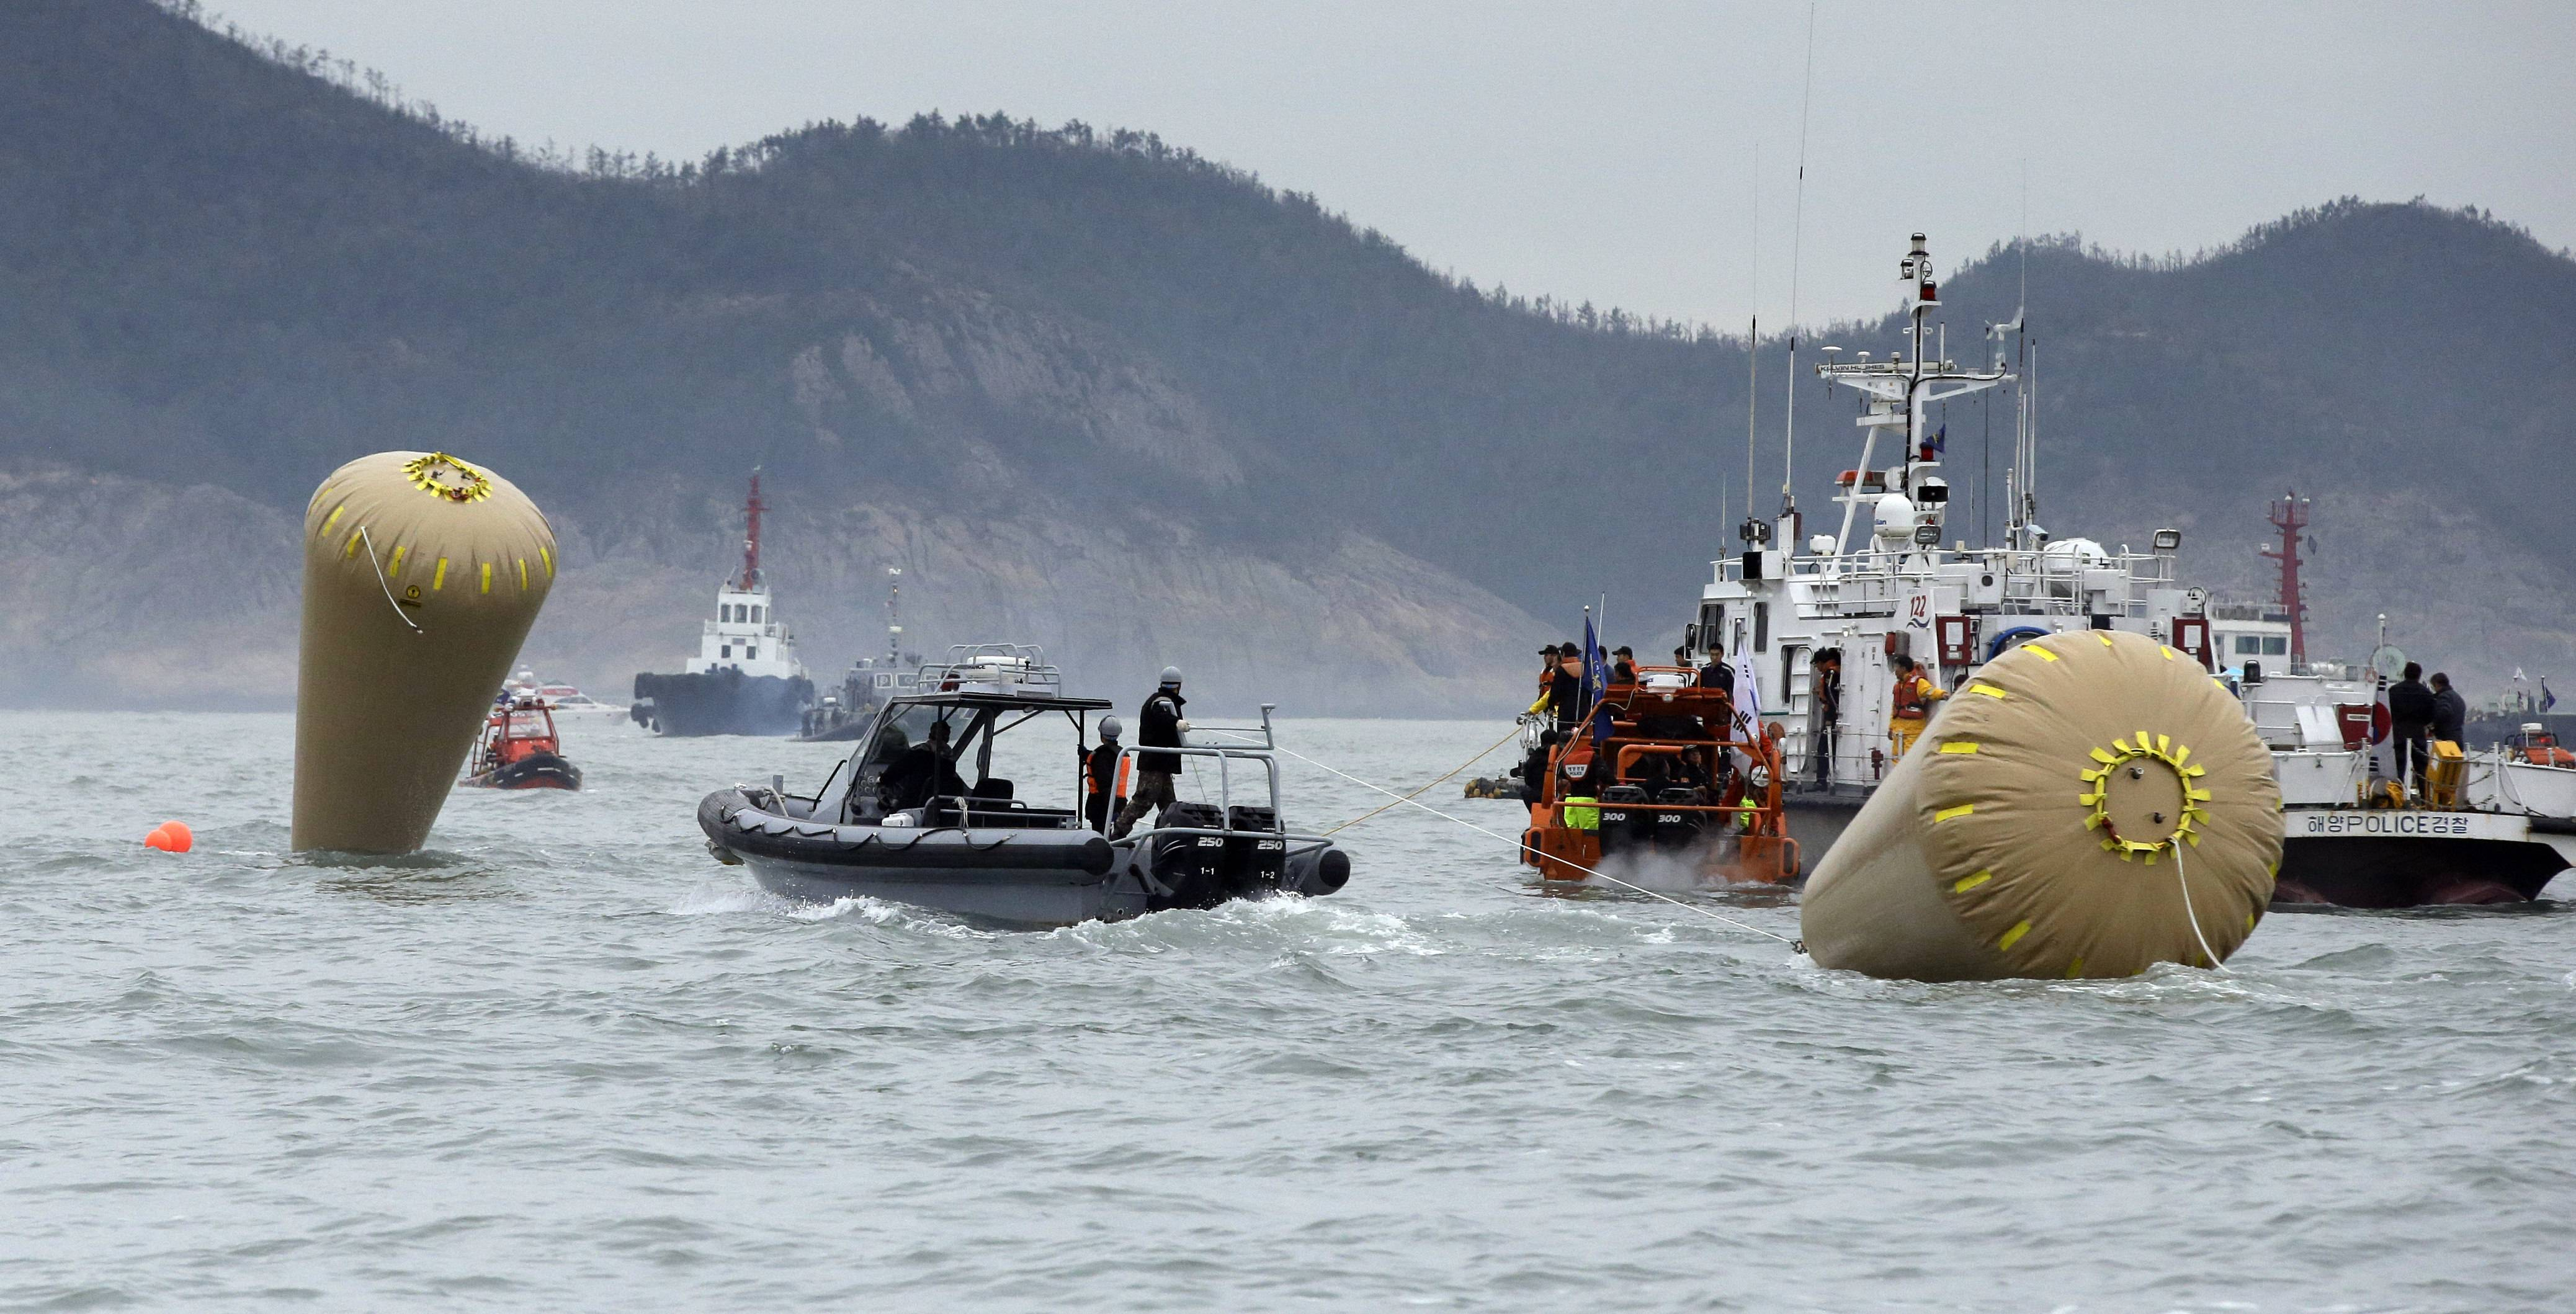 A buoy, right, is towed Friday by a South Korean Navy boat to be installed in addition to the other one, left, to mark the sunken 6,852-ton ferry Sewol in the water off the southern coast near Jindo, south of Seoul, South Korea. Rescuers scrambled to find hundreds of ferry passengers still missing Friday and feared dead, as fresh questions emerged about whether quicker action by the captain of the doomed ship could have saved lives.